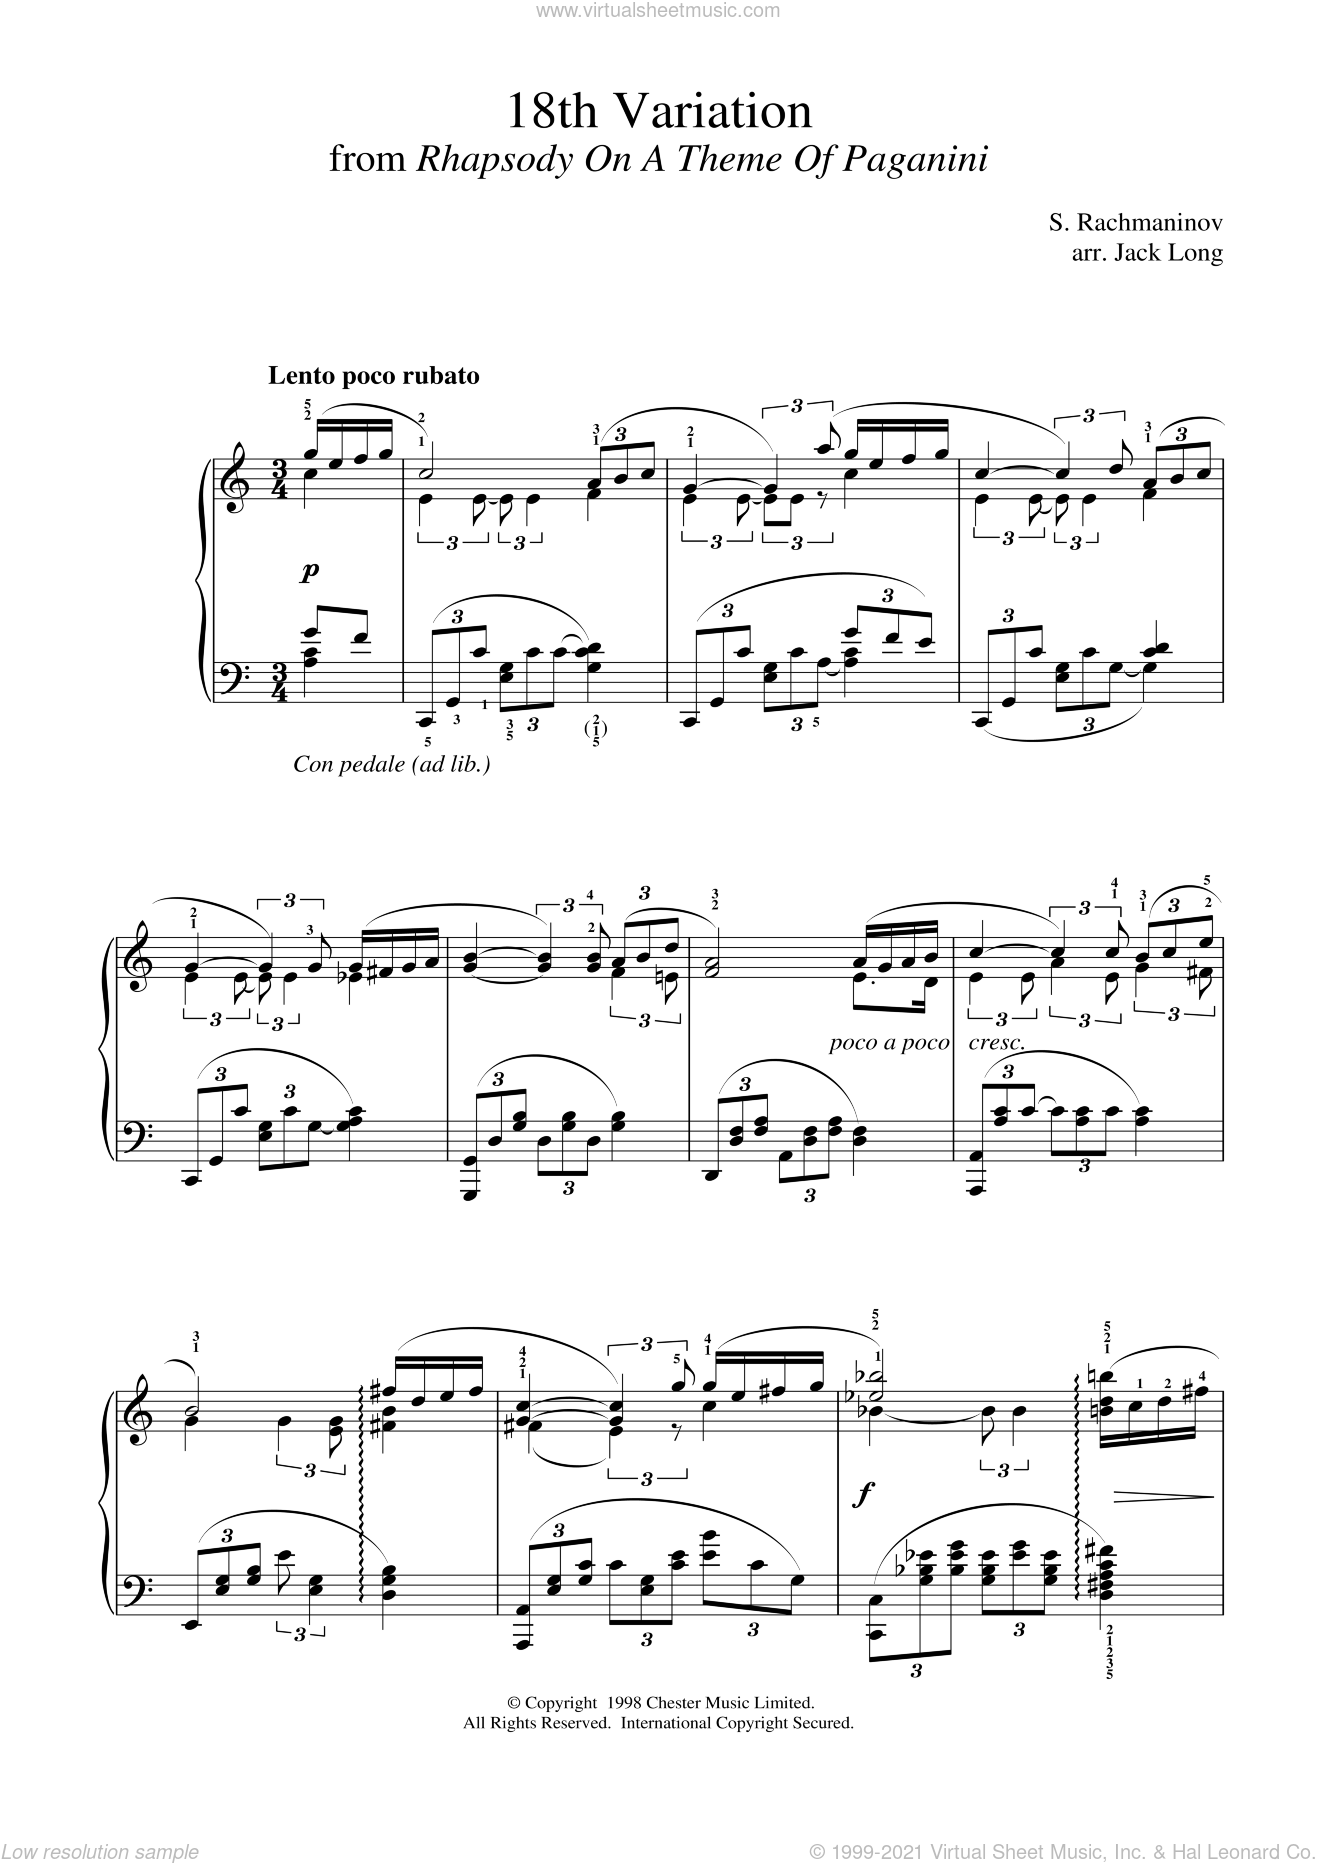 18th Variation sheet music for piano solo by Serjeij Rachmaninoff